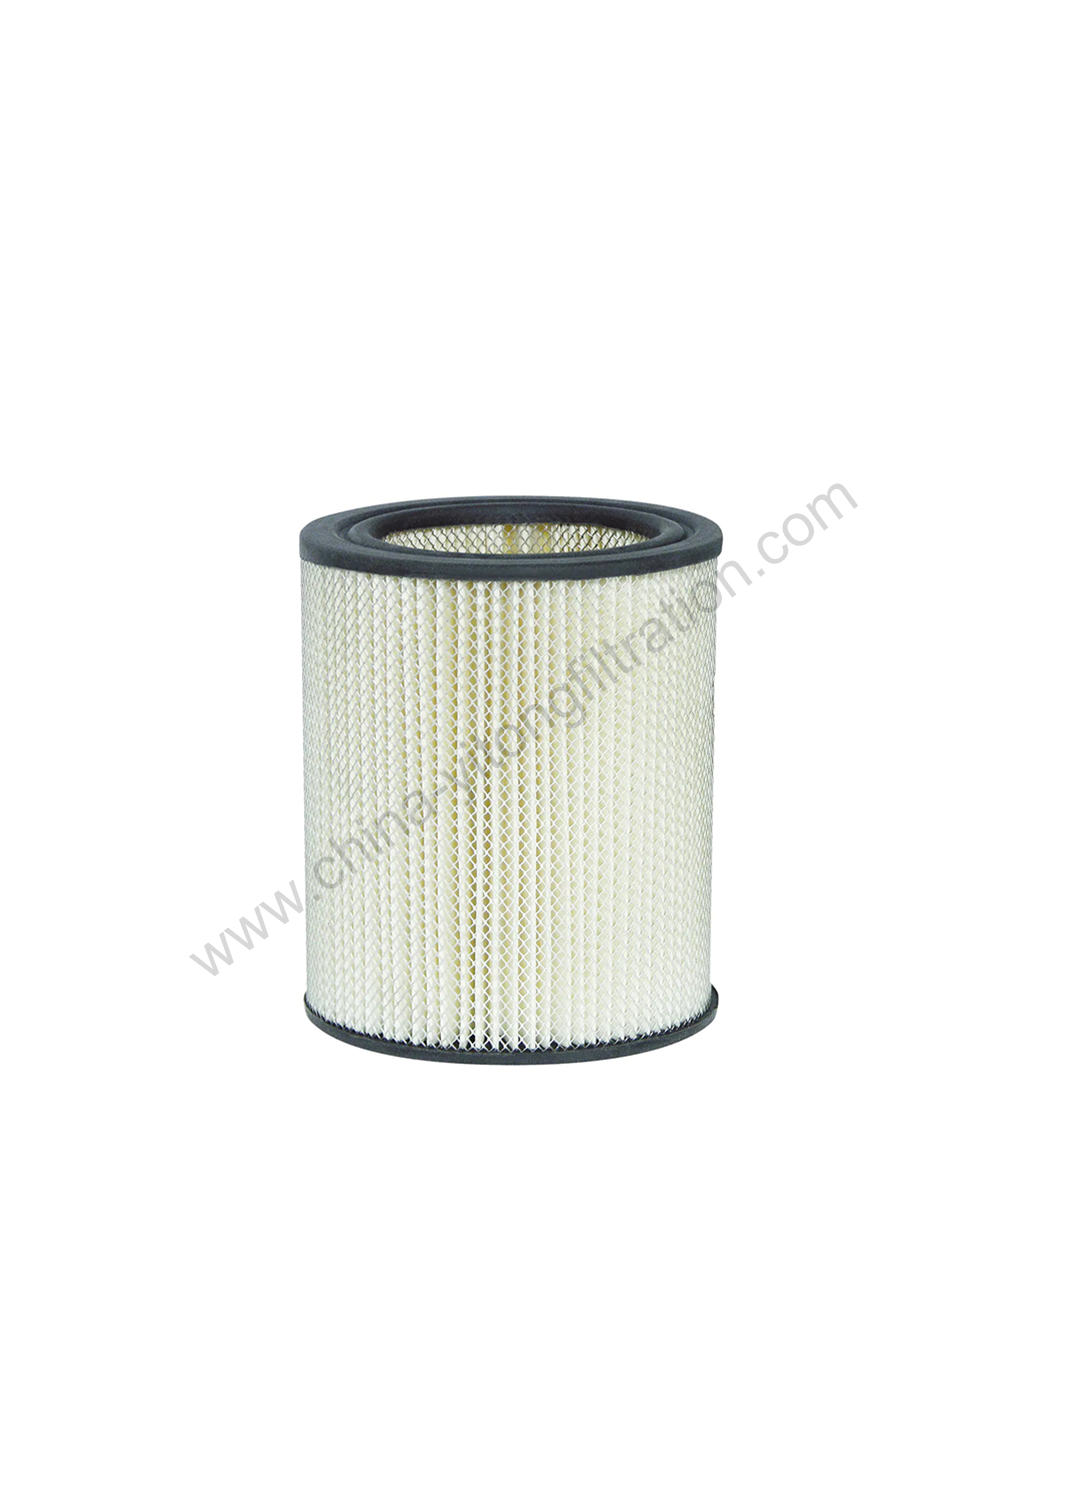 Air Compressor Filter Cartridge